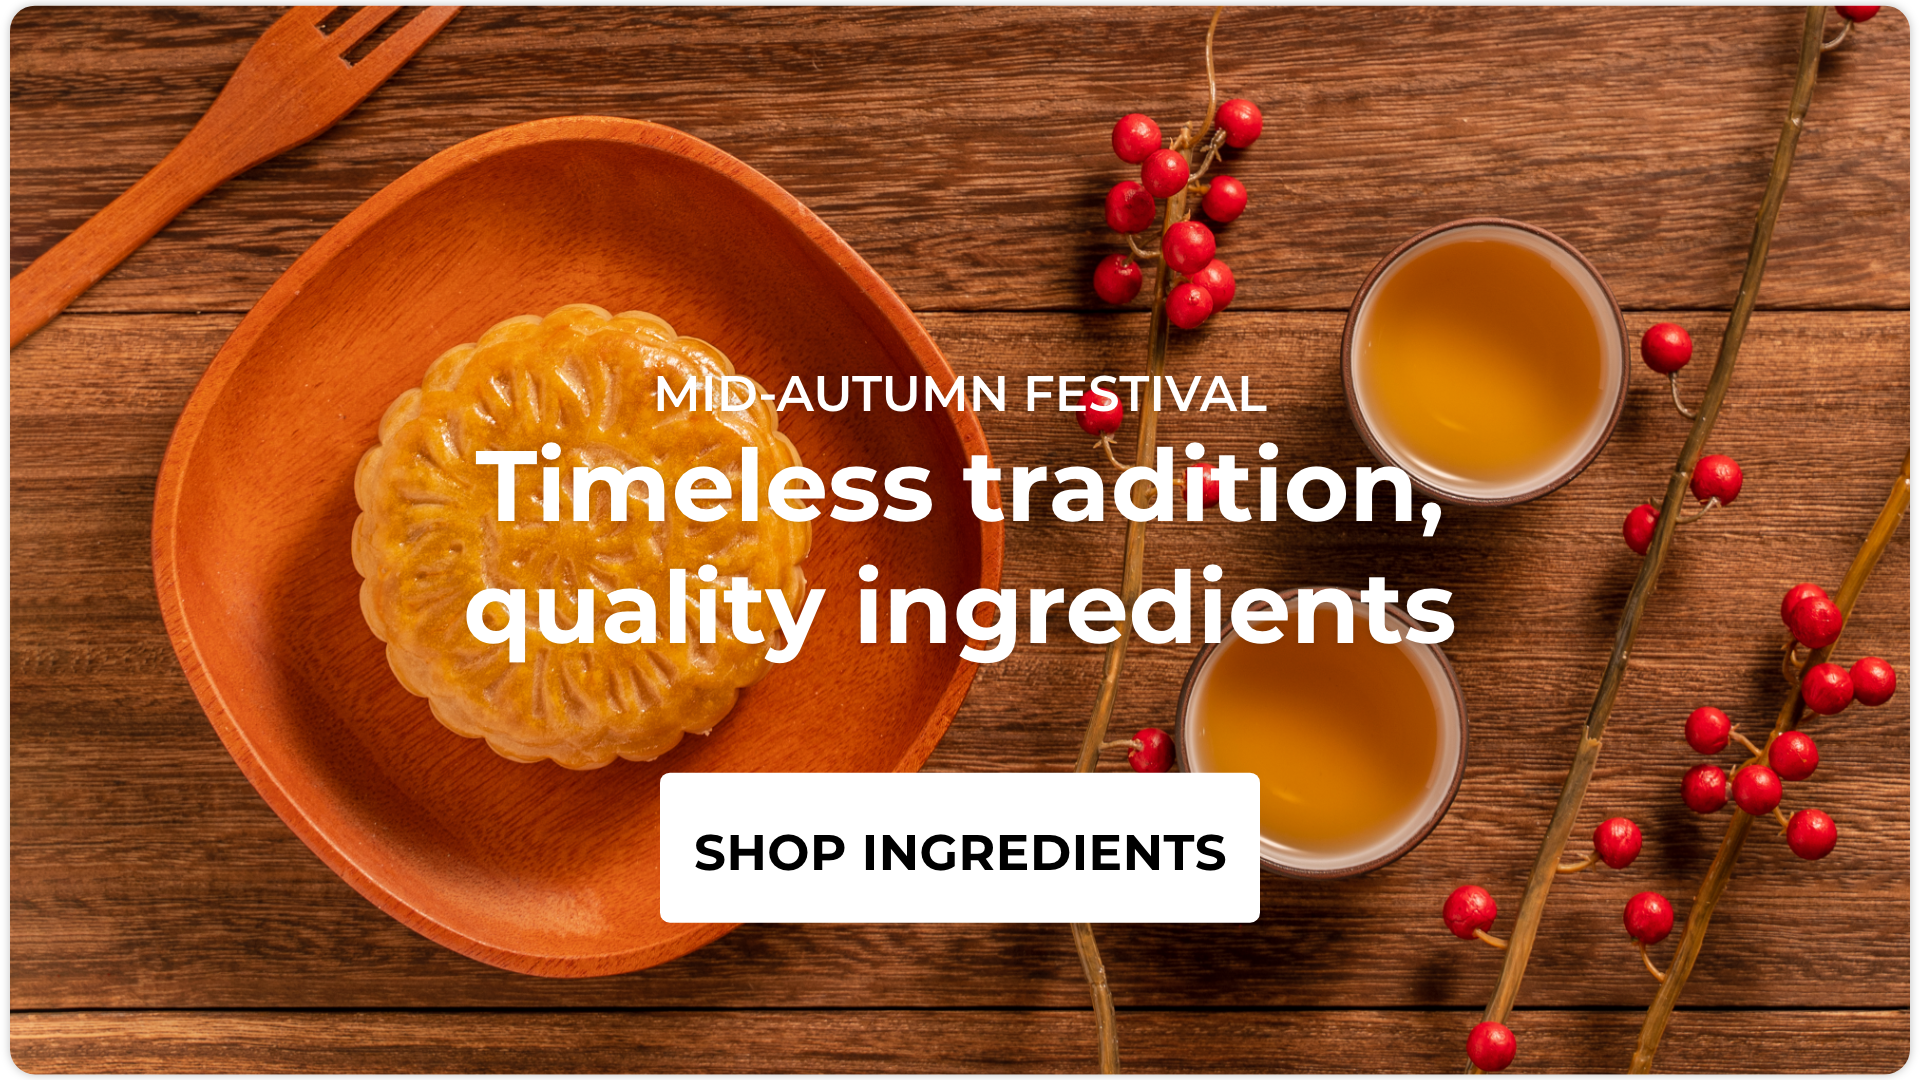 Get quality ingredients for Mid-Autumn Festival 2021